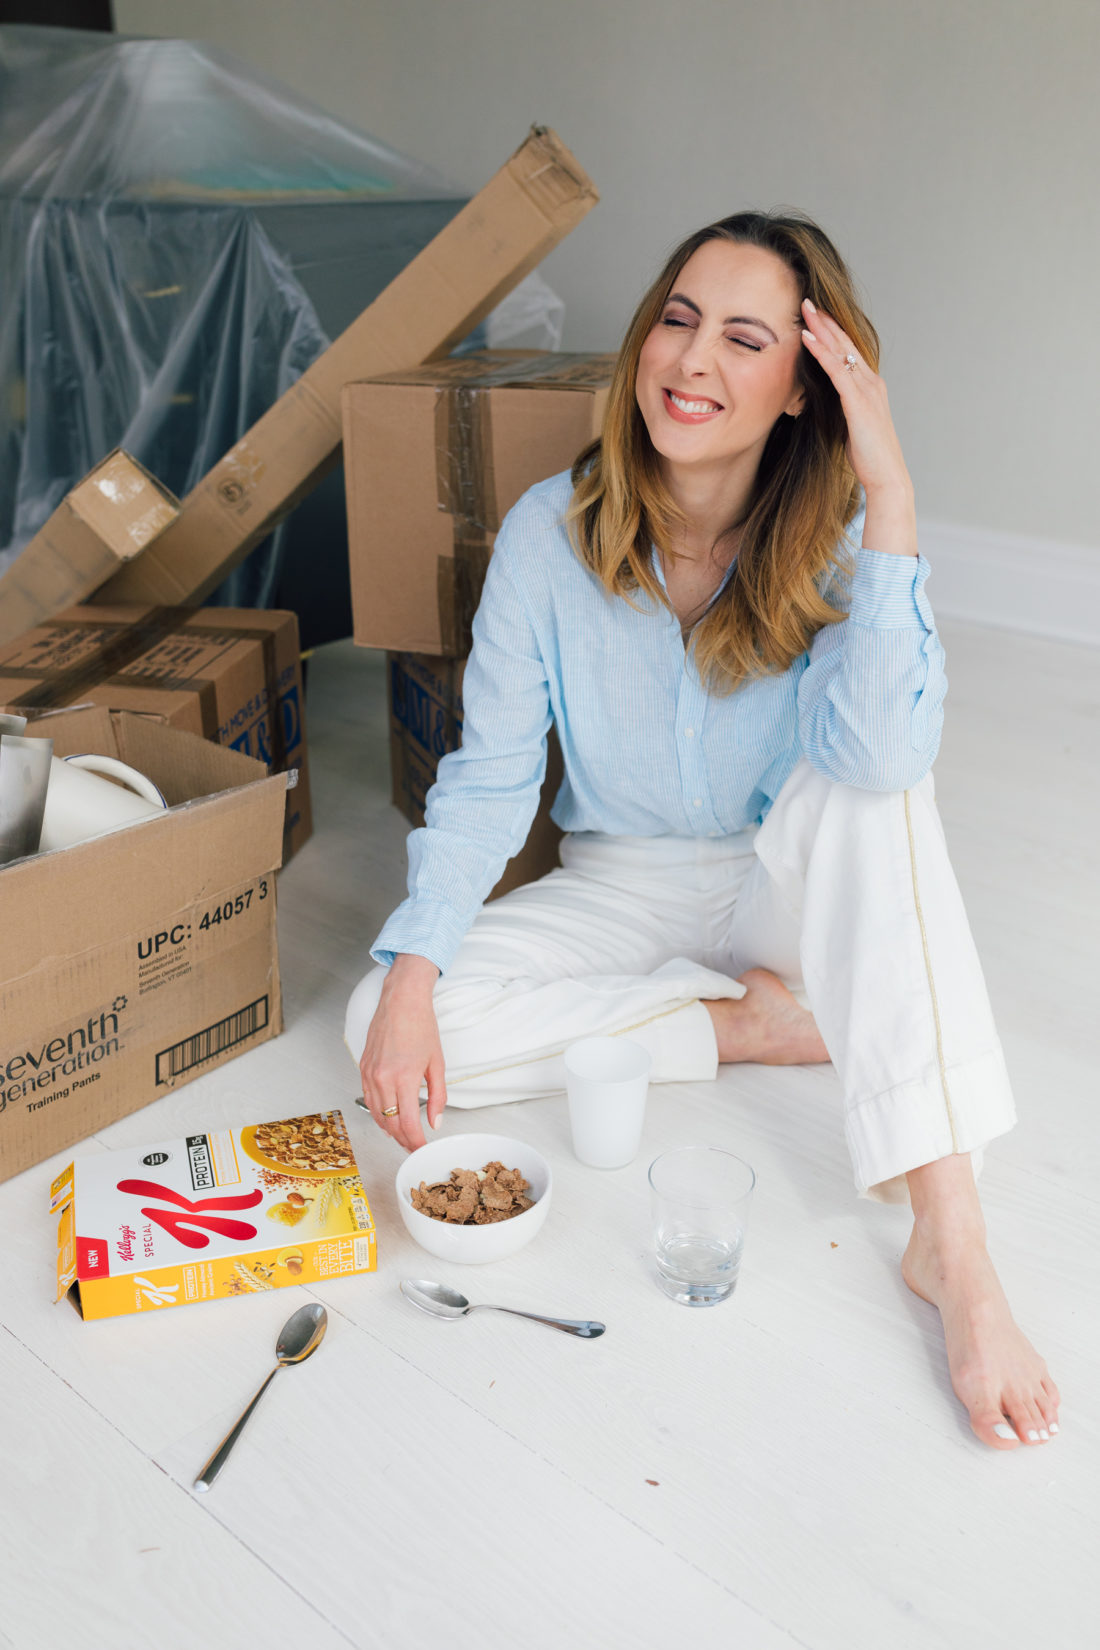 Eva Amurri Martino of Happily Eva After sits on the floor of her newly renovated historic home in Connecticut, enjoying a bowl of Special K